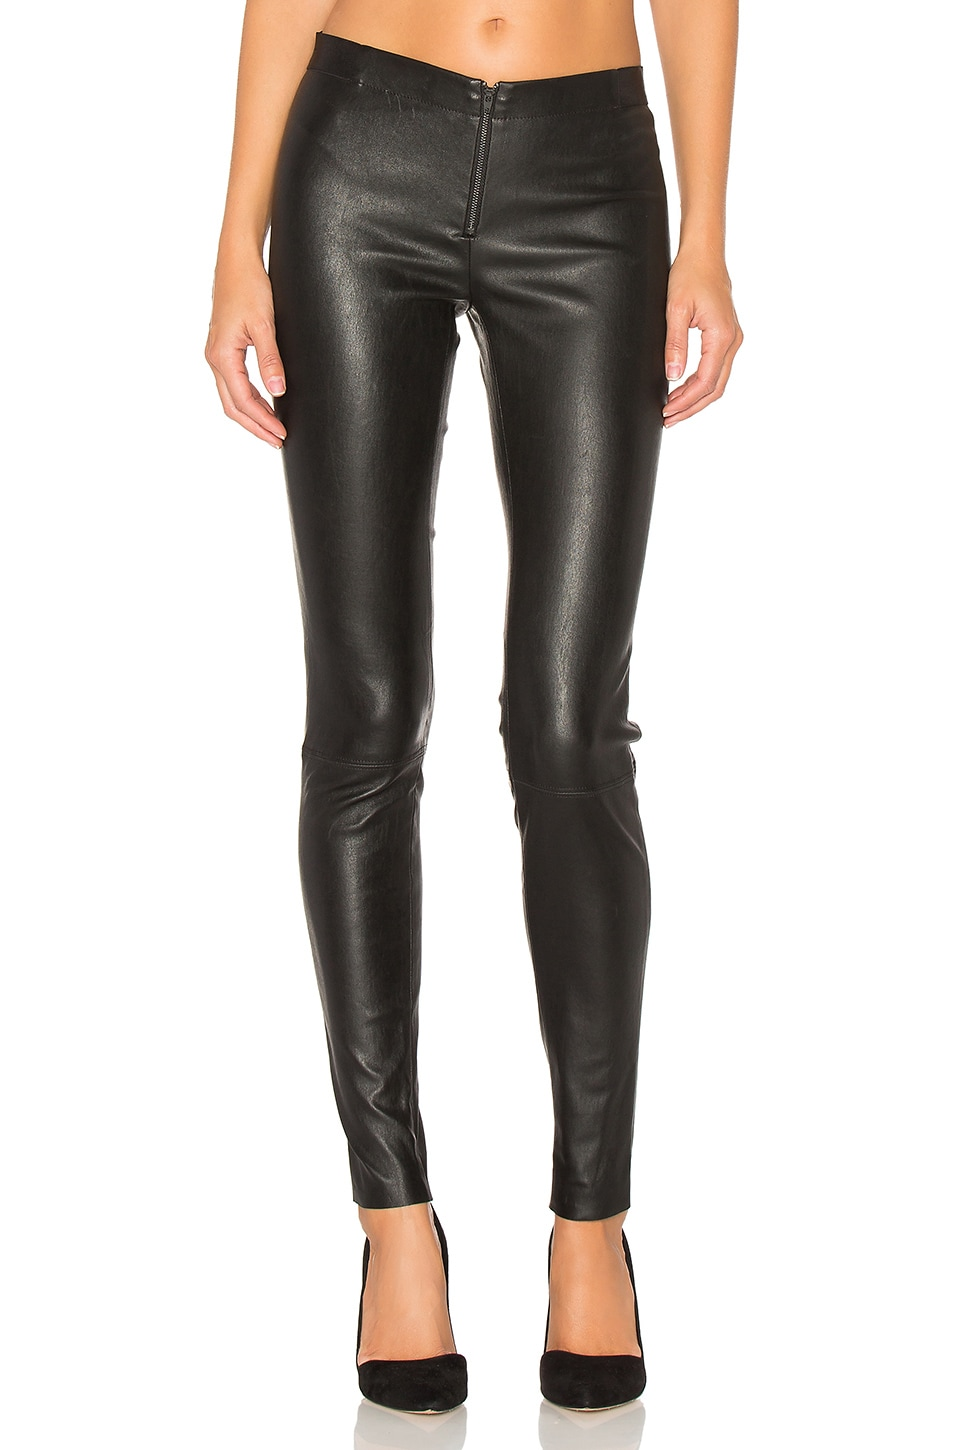 Alice + Olivia Front Zip Leather Legging in Black